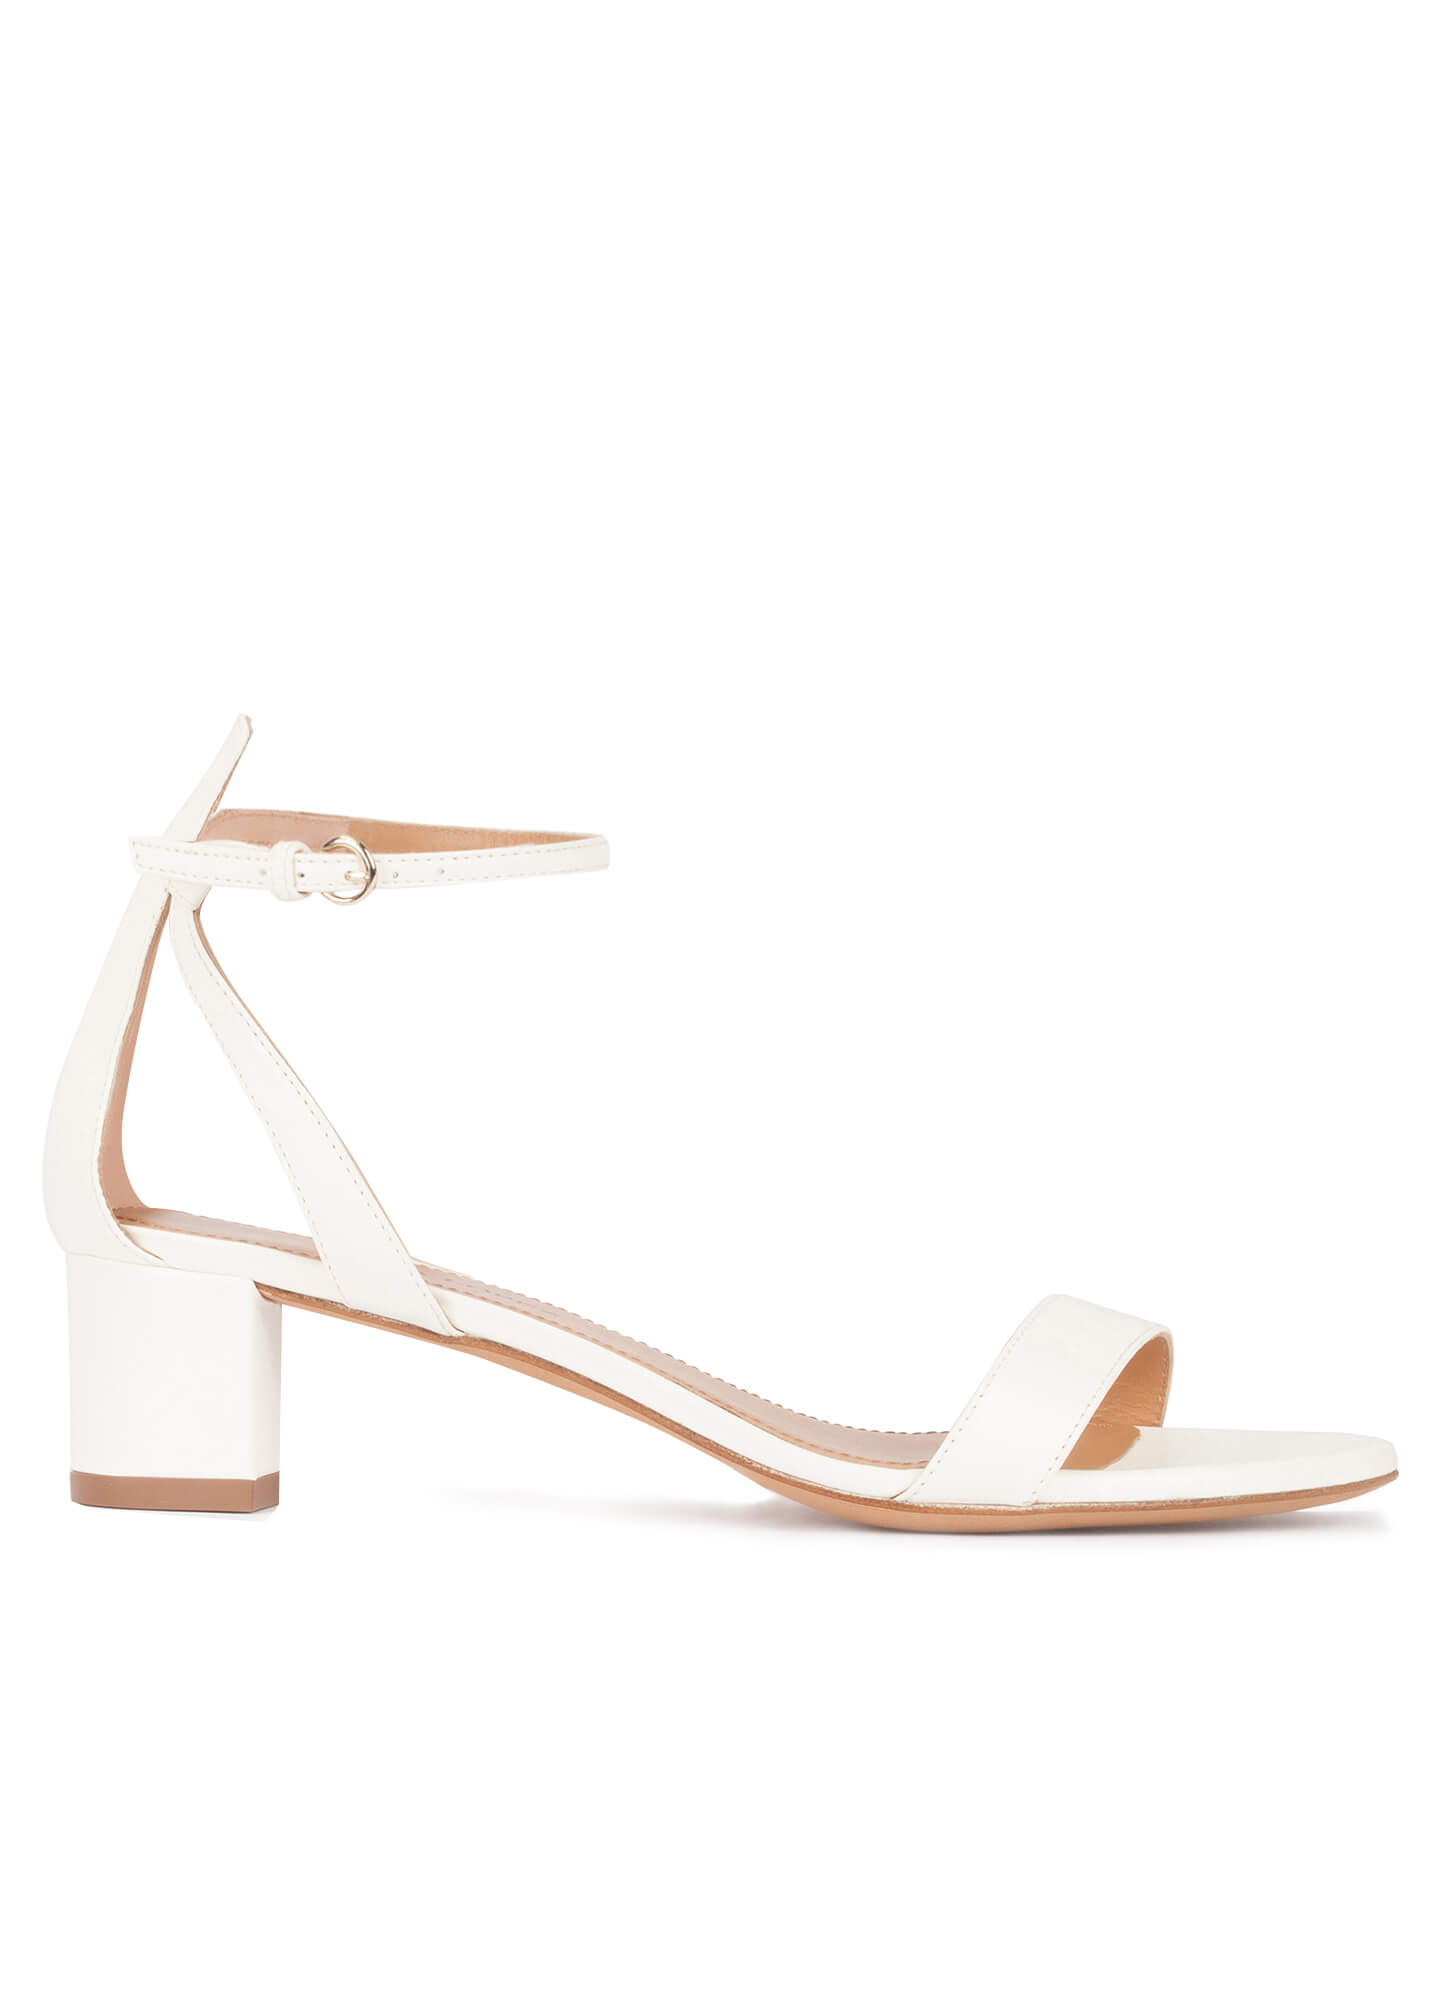 0e27f8d53228 Oneida Pura López. Ankle strap mid block heel sandals in offwhite leather  ...